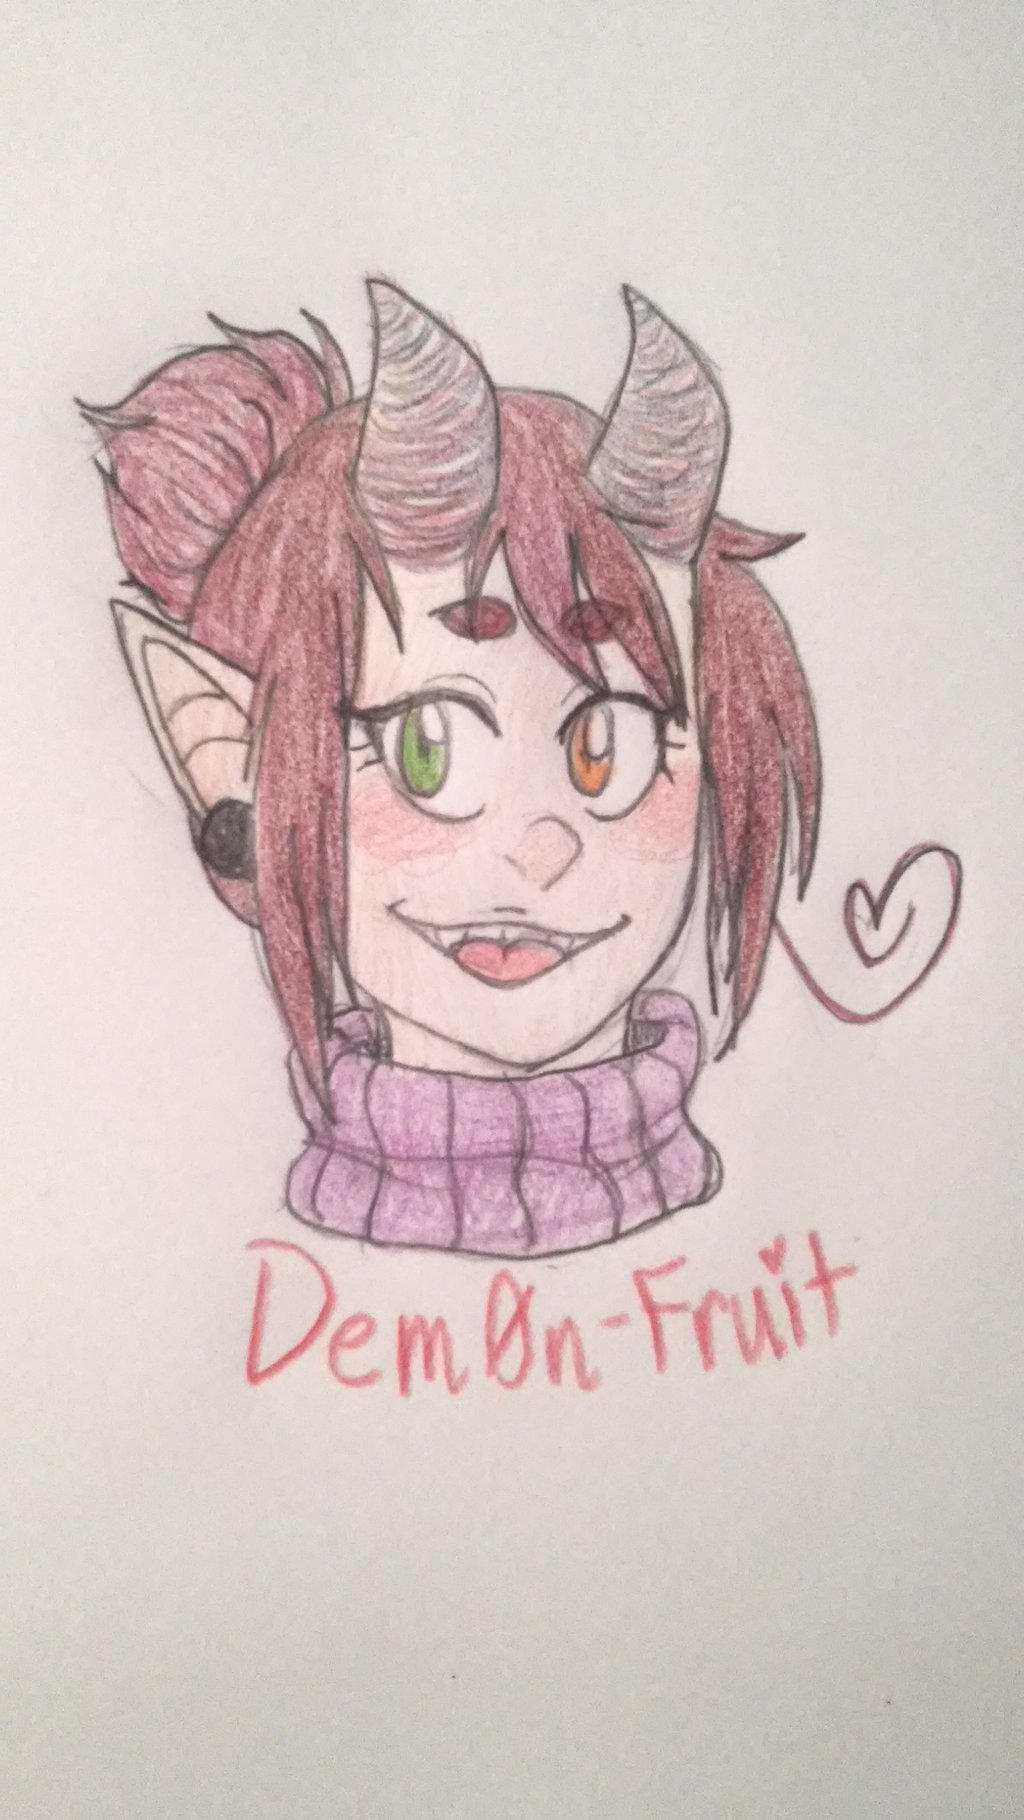 DEM0N-FRUIT's Profile Picture